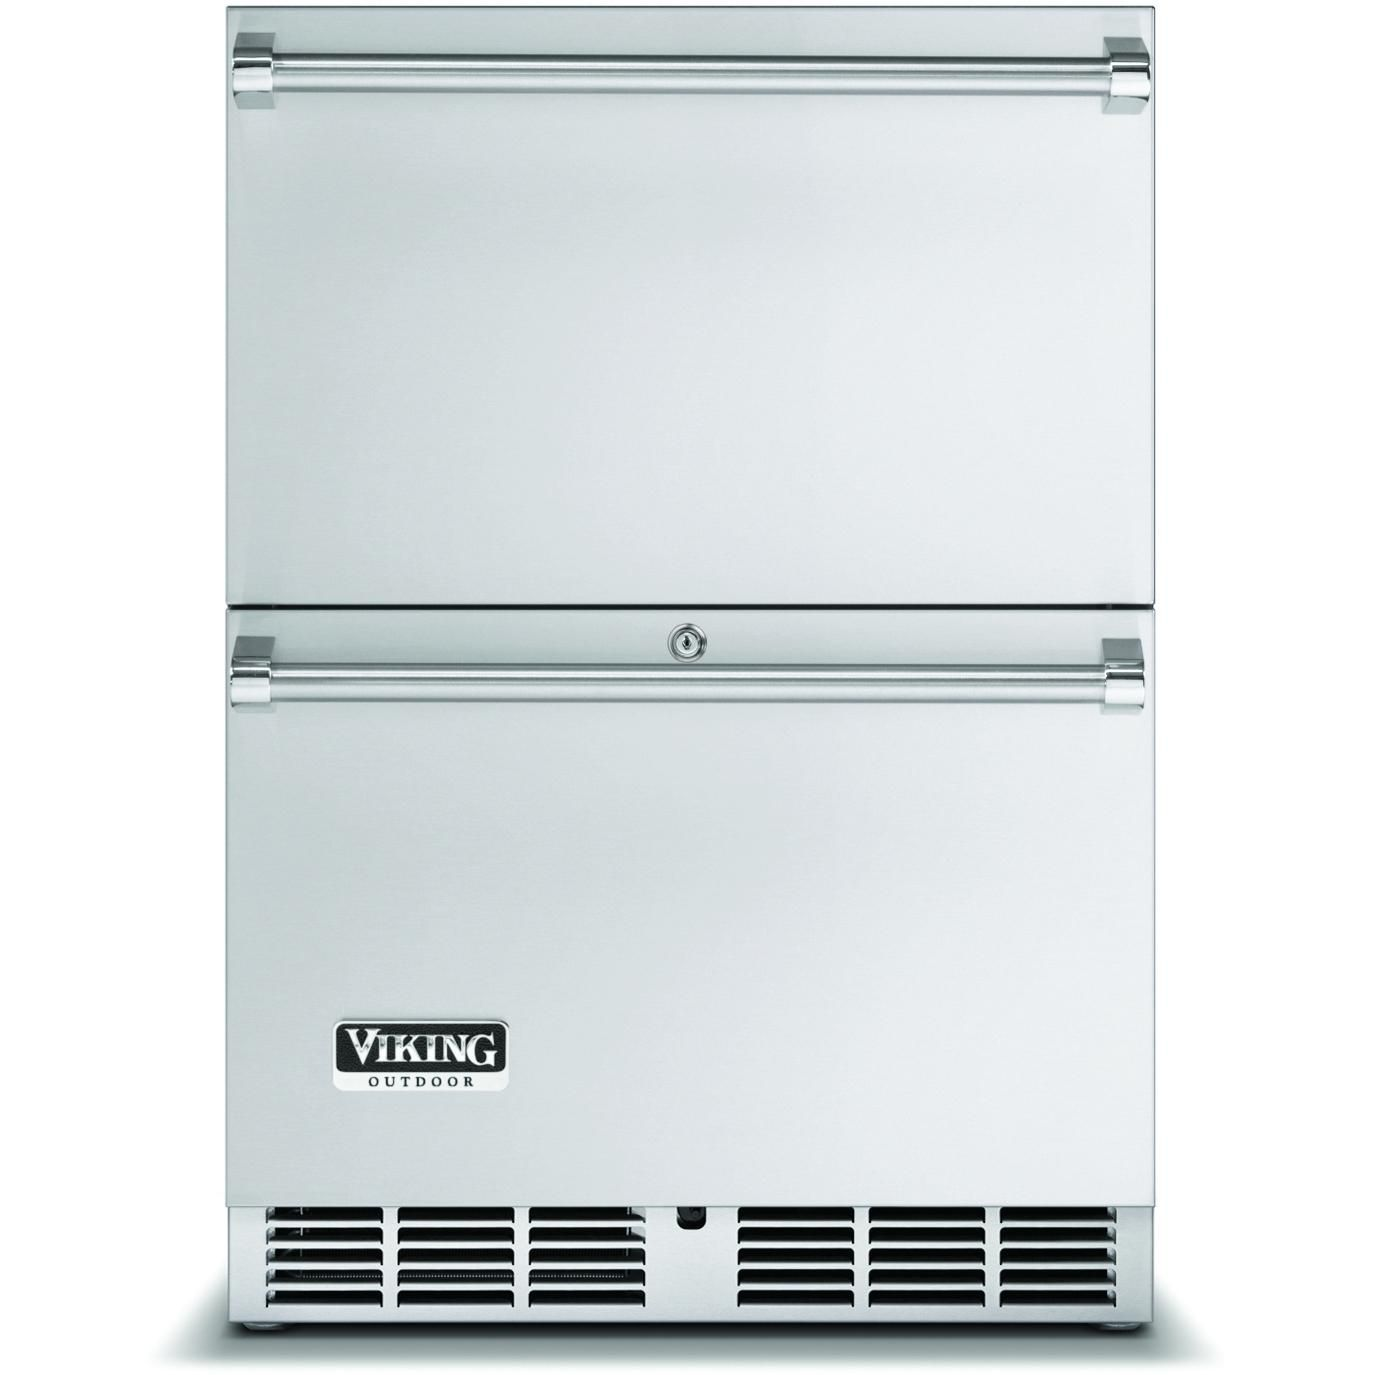 Viking VRDO5240DSS 24Inch Outdoor Undercounter Stainless